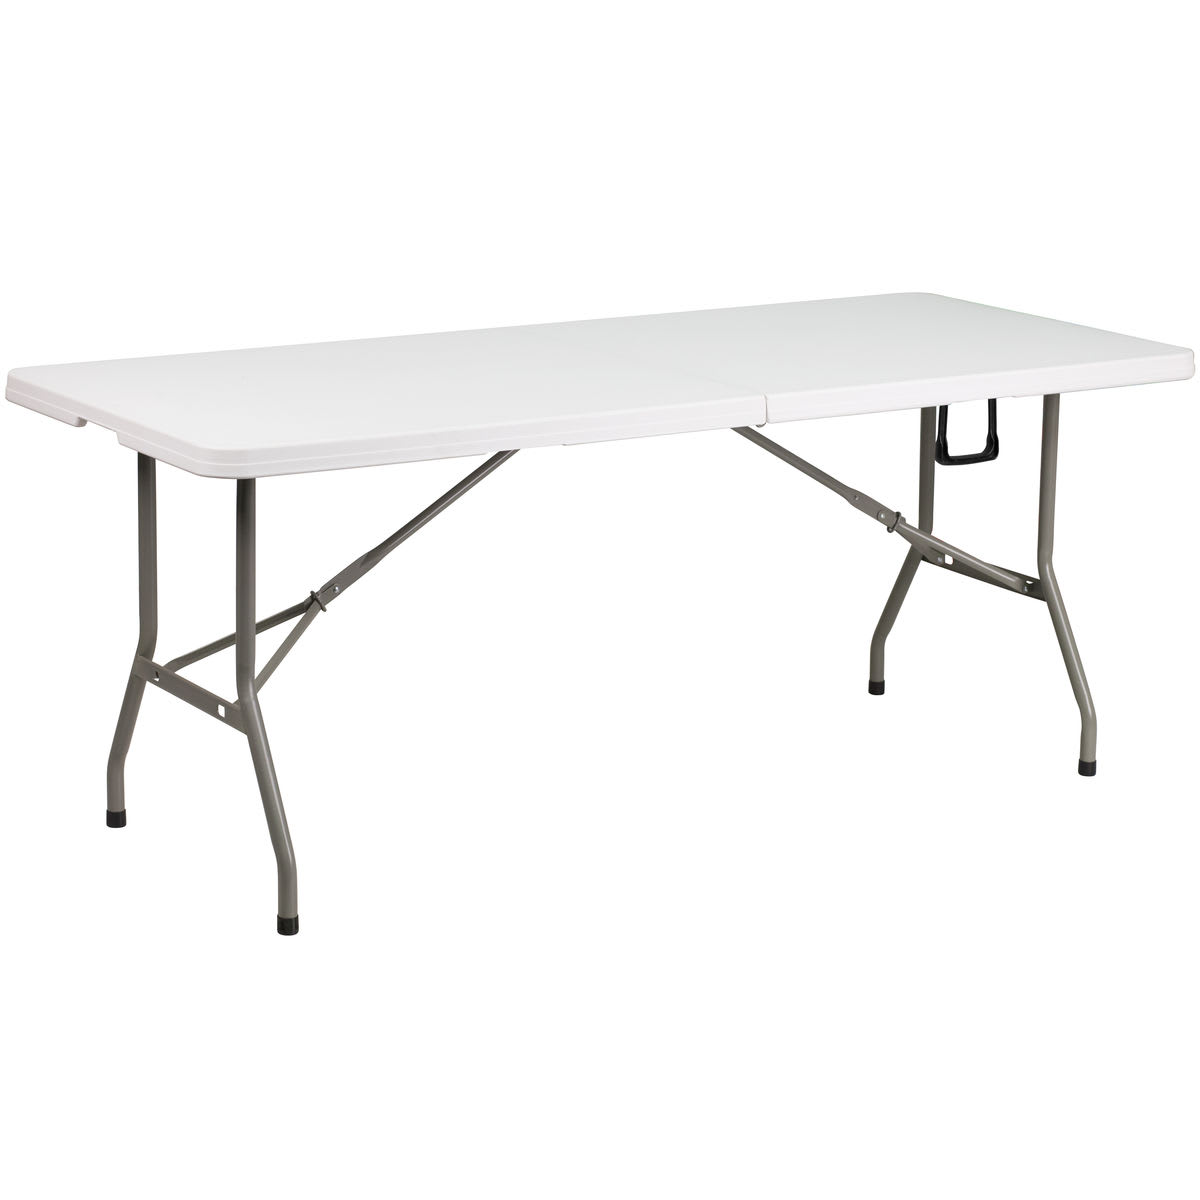 Plastic Folding Table - White Granite